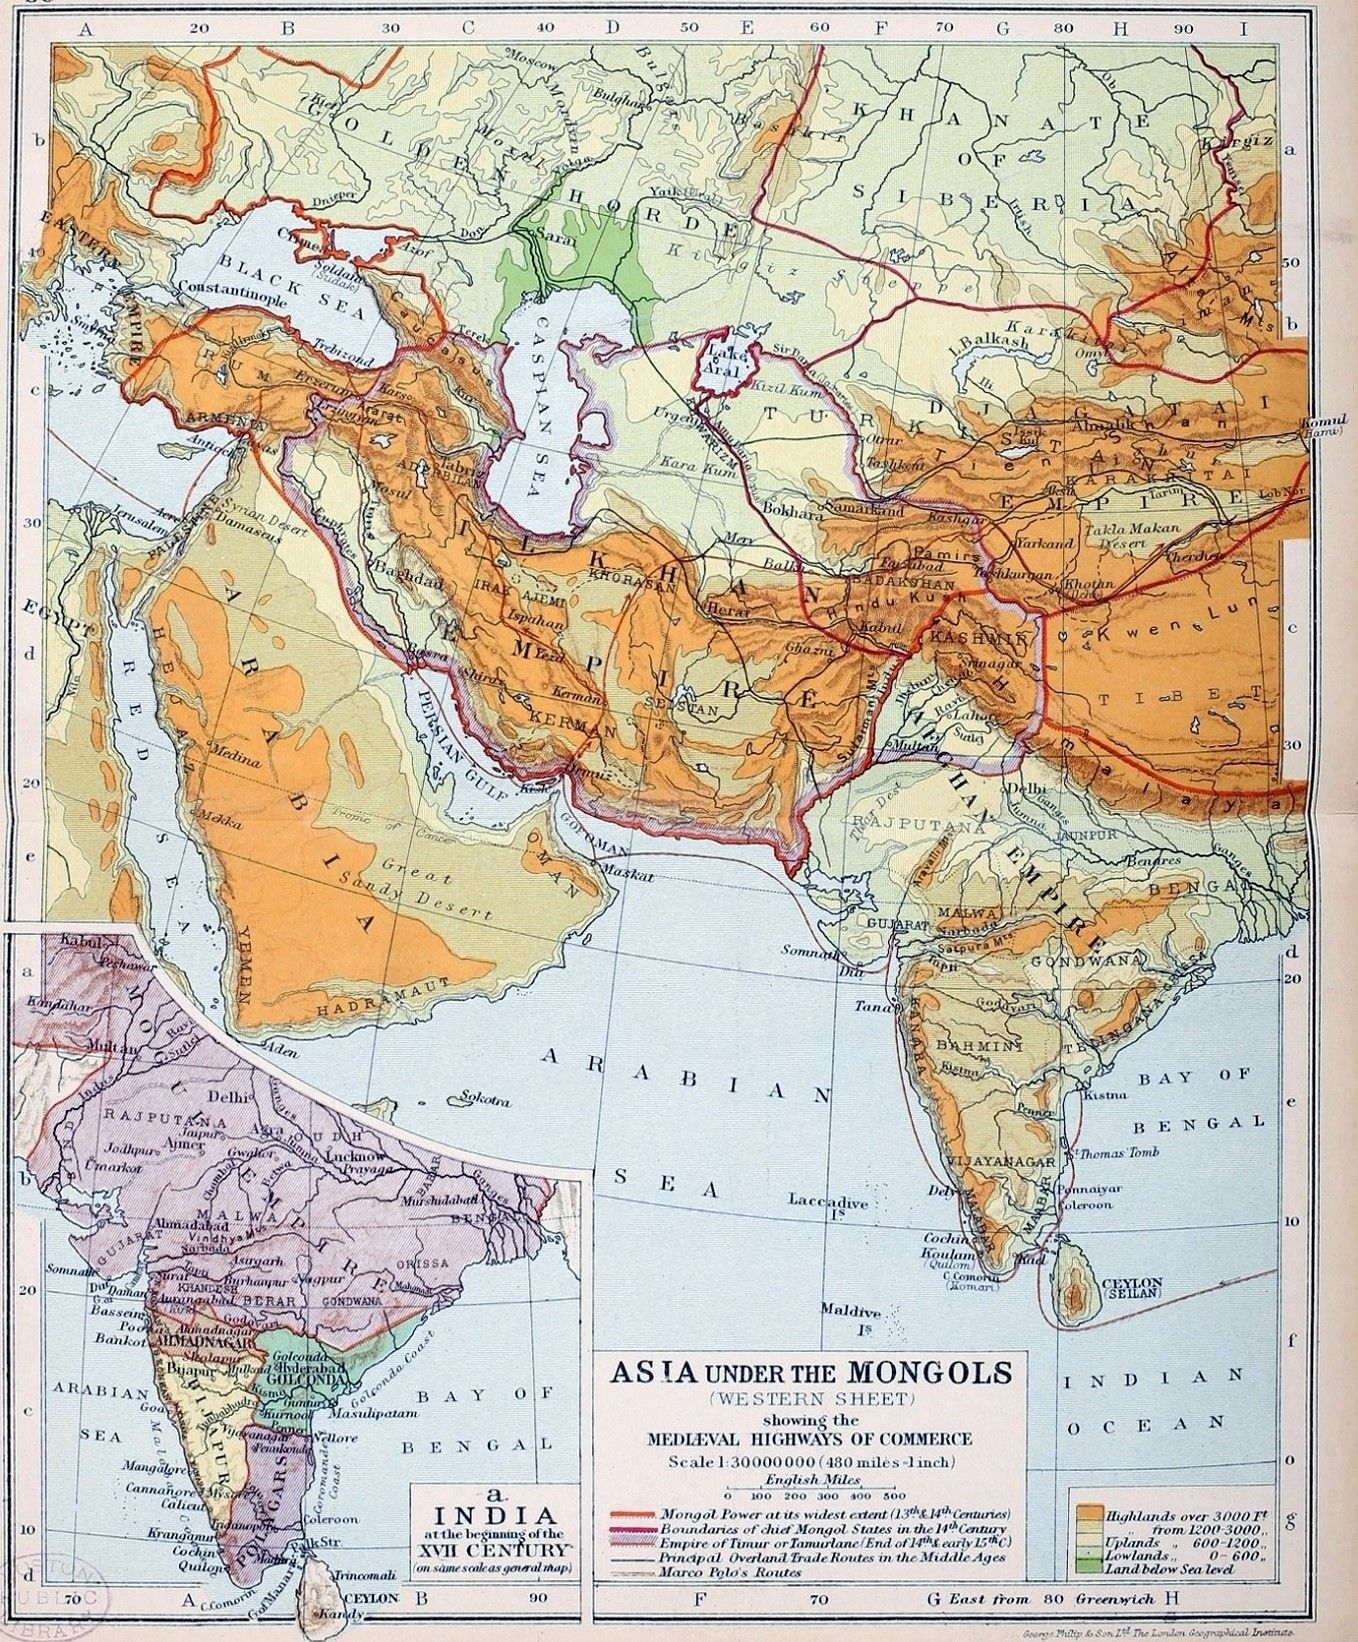 Asian country had two rulers for centuries